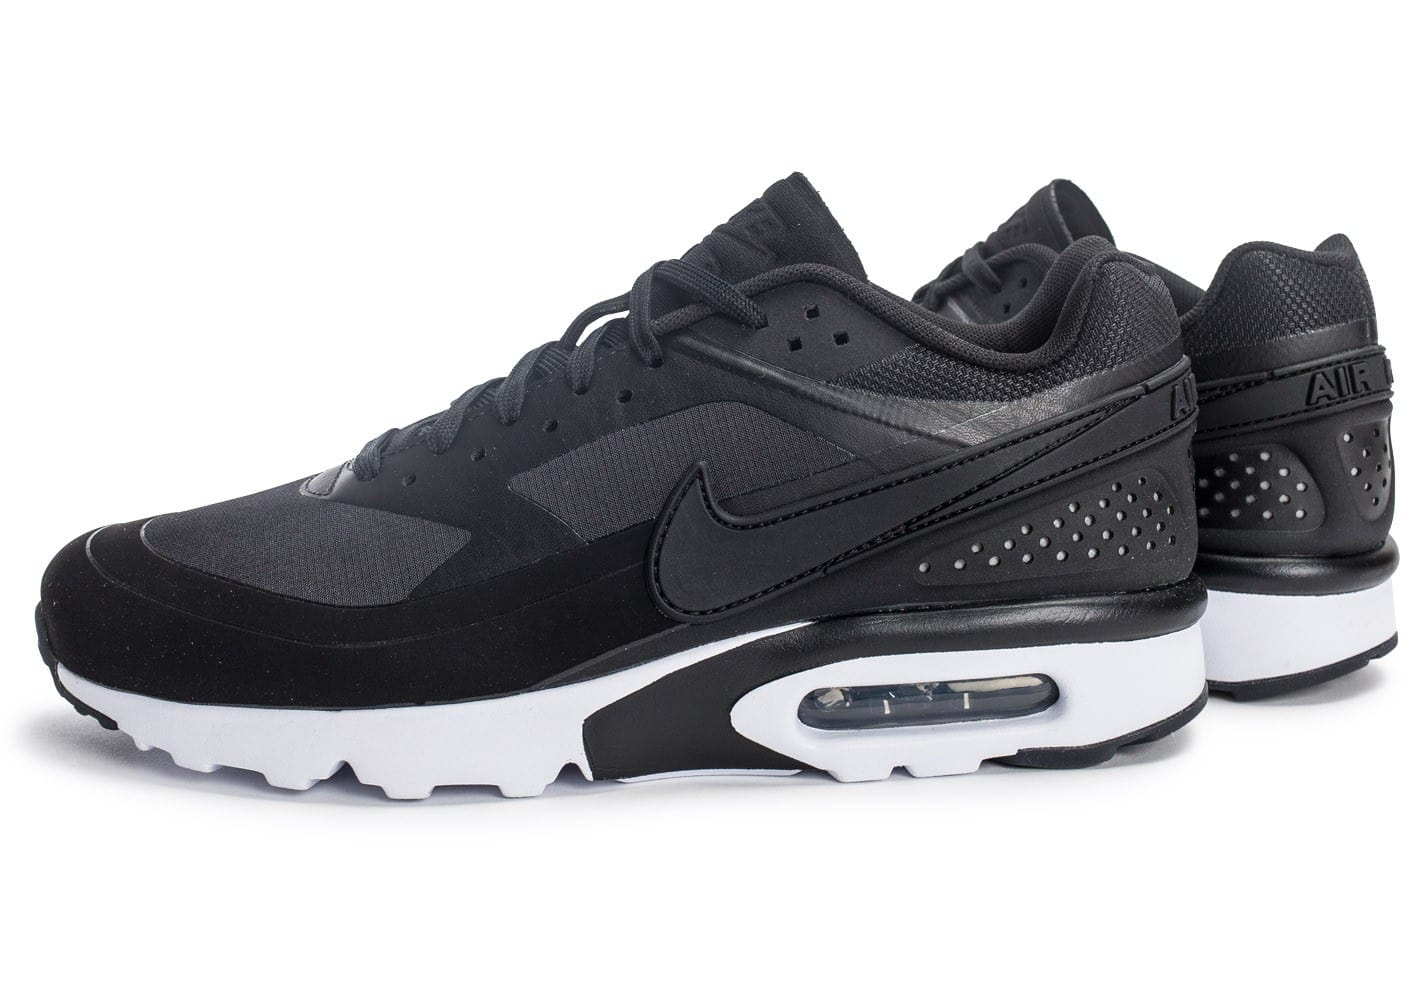 Cliquez pour zoomer Chaussures Nike Air Max BW Ultra Leather anthracite vue  extérieure ...